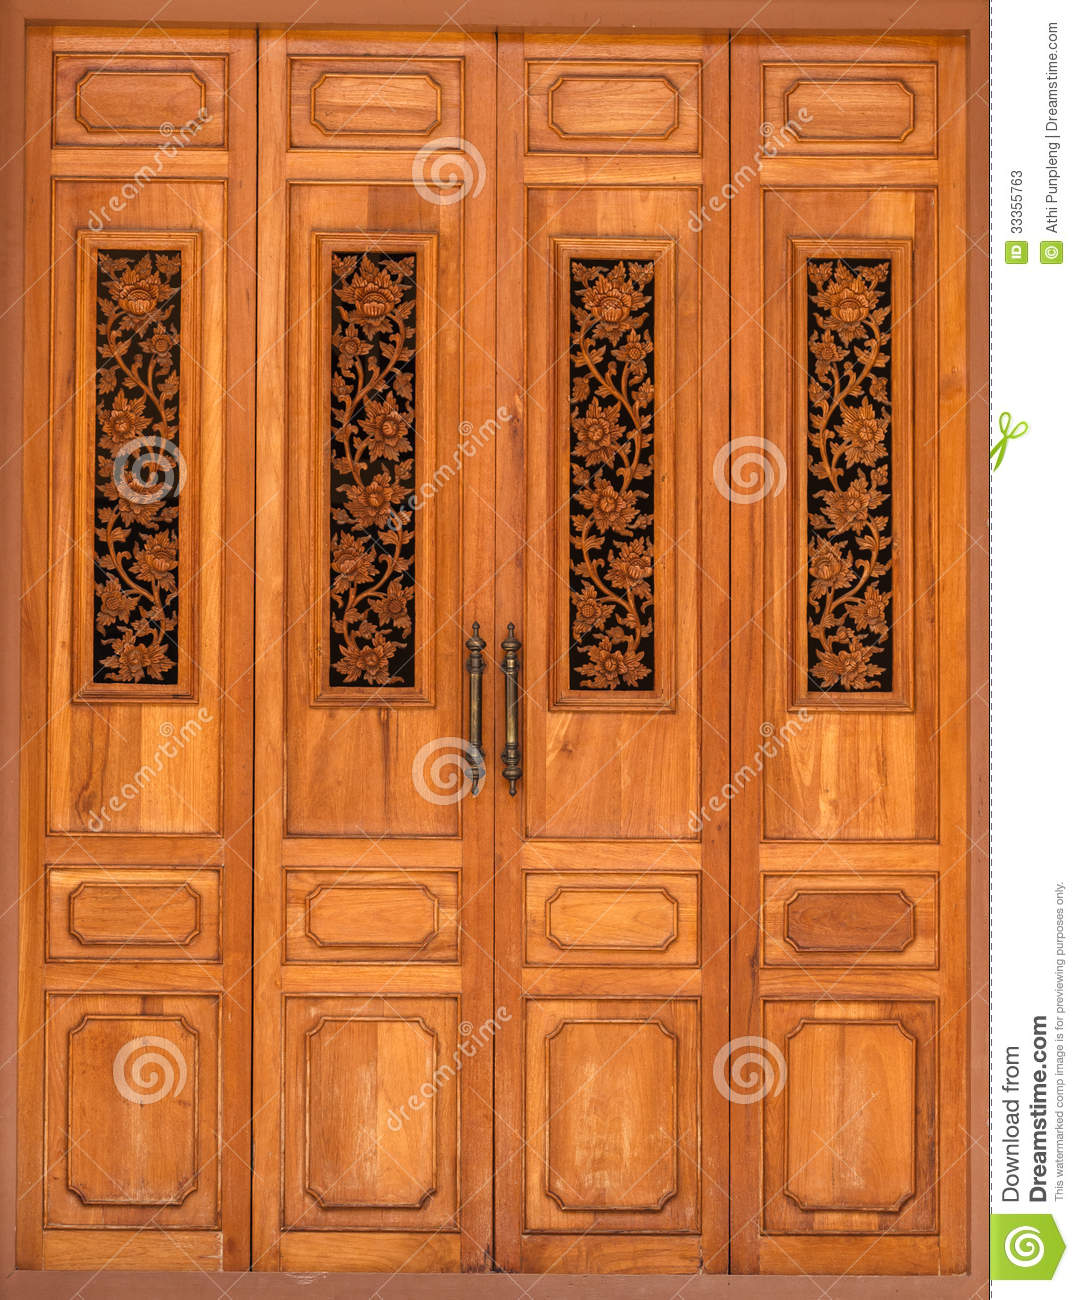 Wooden door decorated with floral wood carvings stock image image